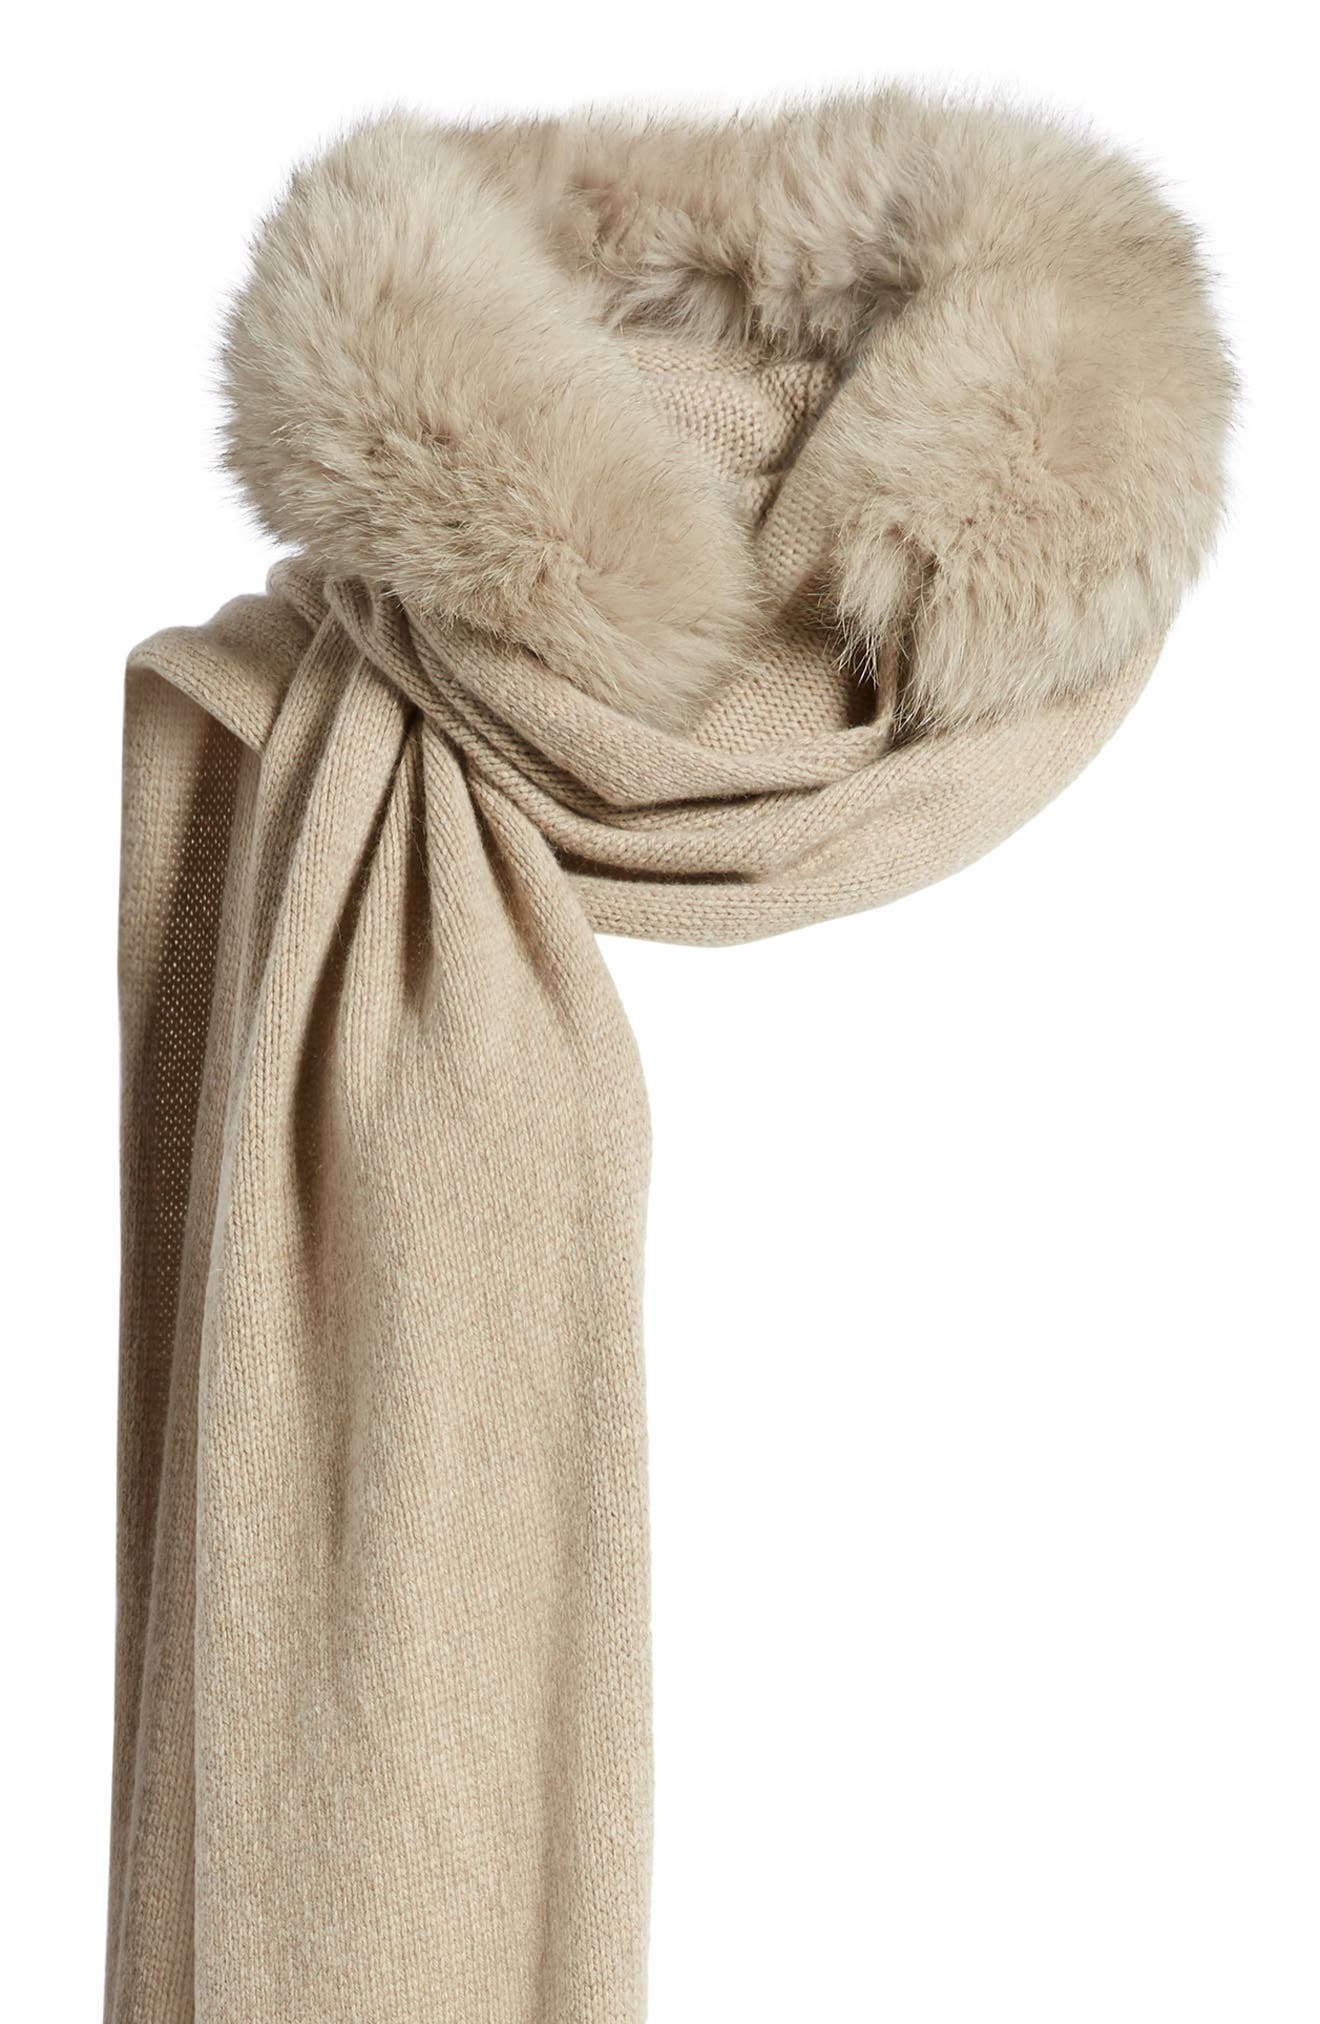 Nava Hooded Scarf with Genuine Fox Fur Trim,                             Alternate thumbnail 4, color,                             001 ALBINO